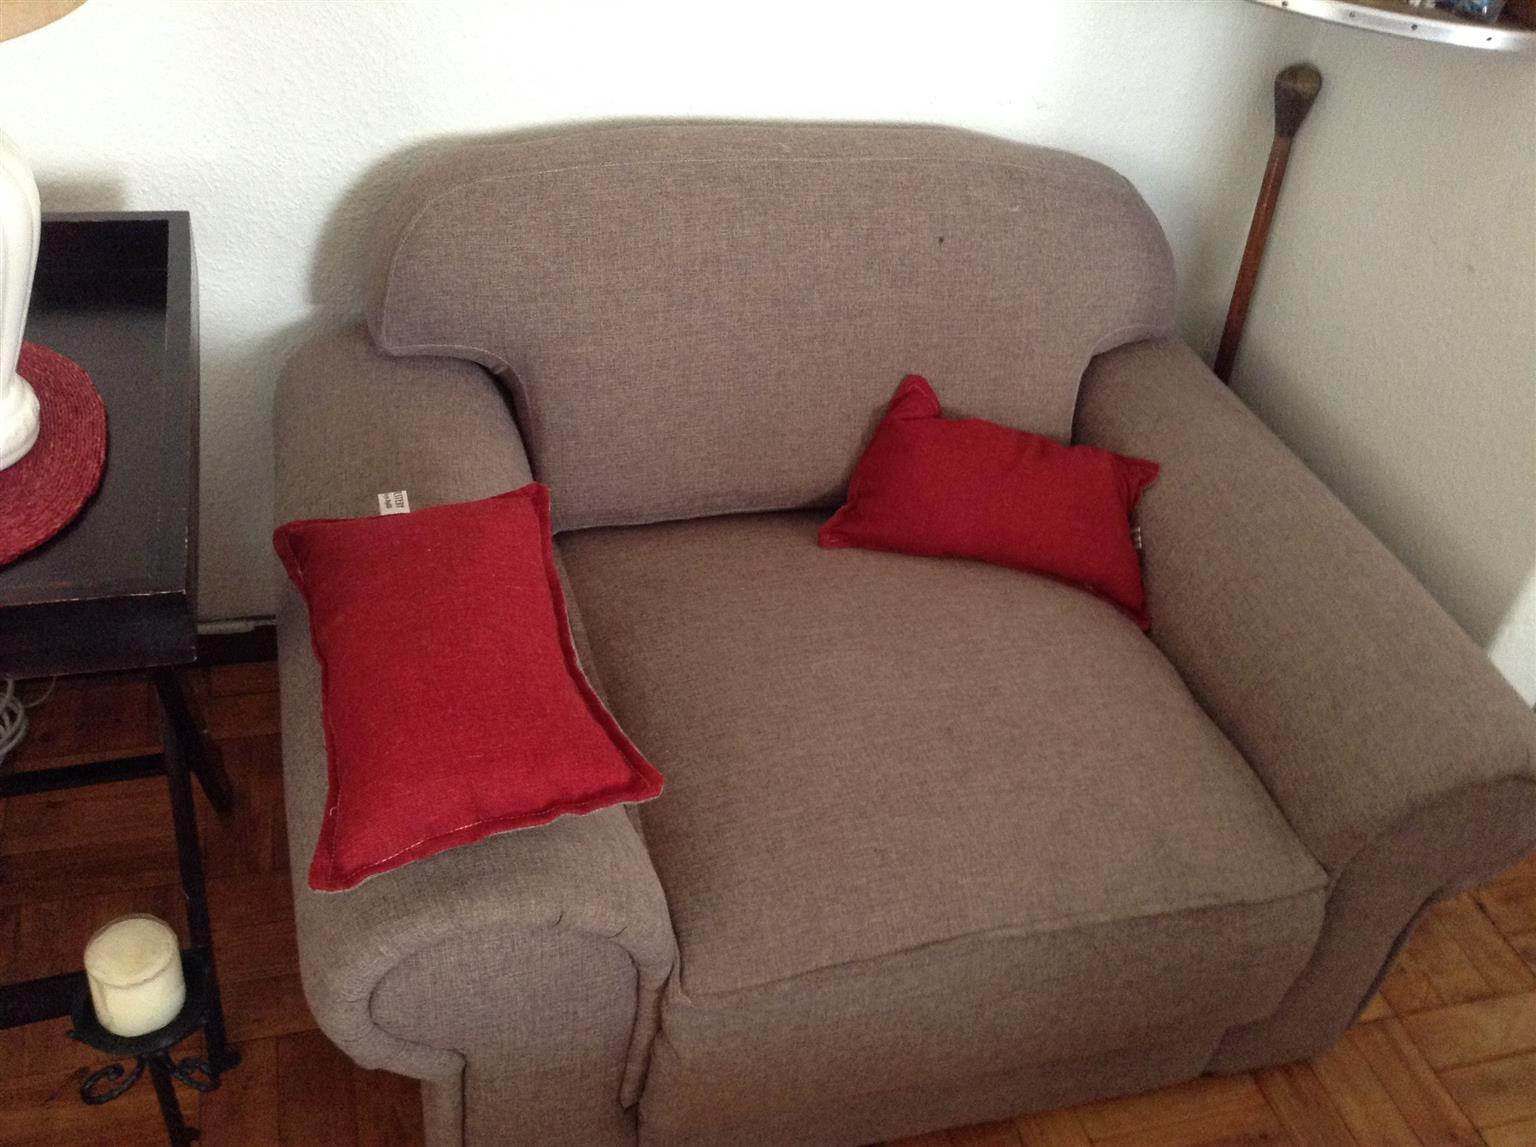 tv caninet and couches